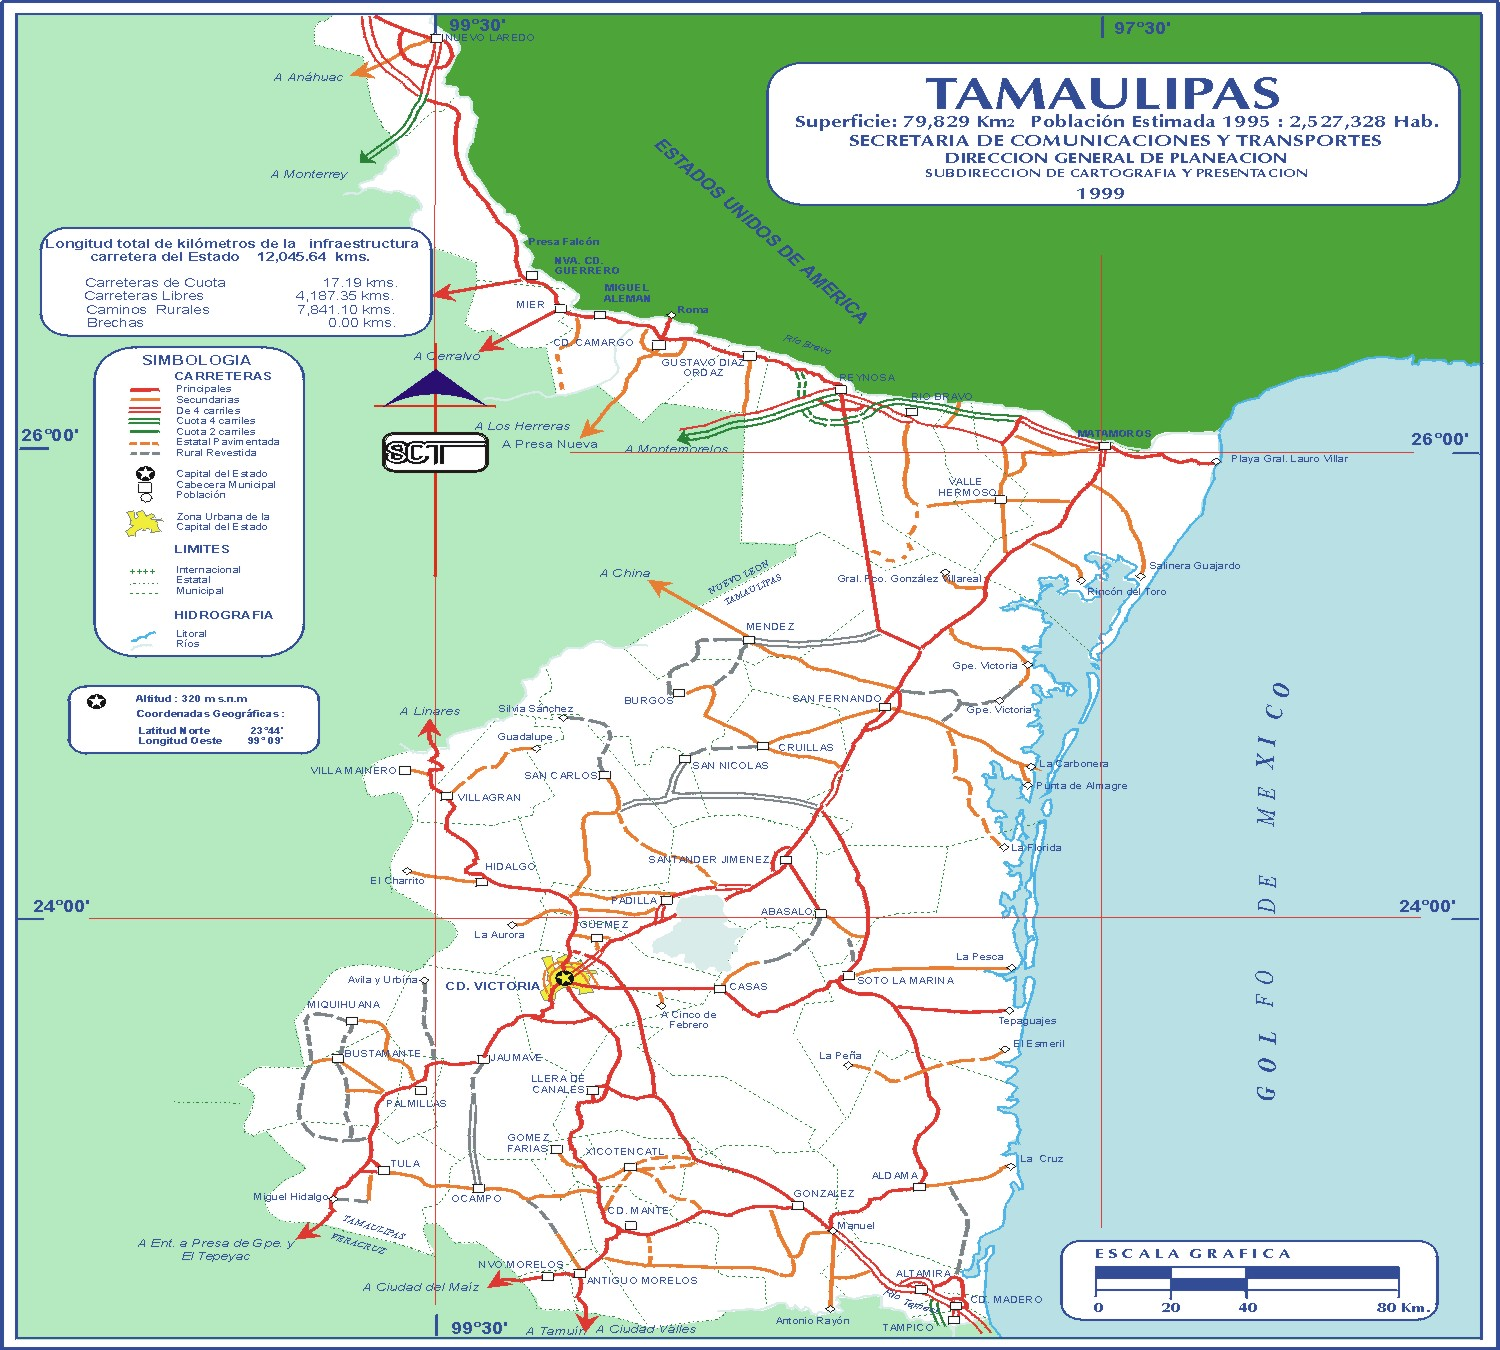 Tamaulipas Mexico Road Map Mapsofnet - Mexico road map